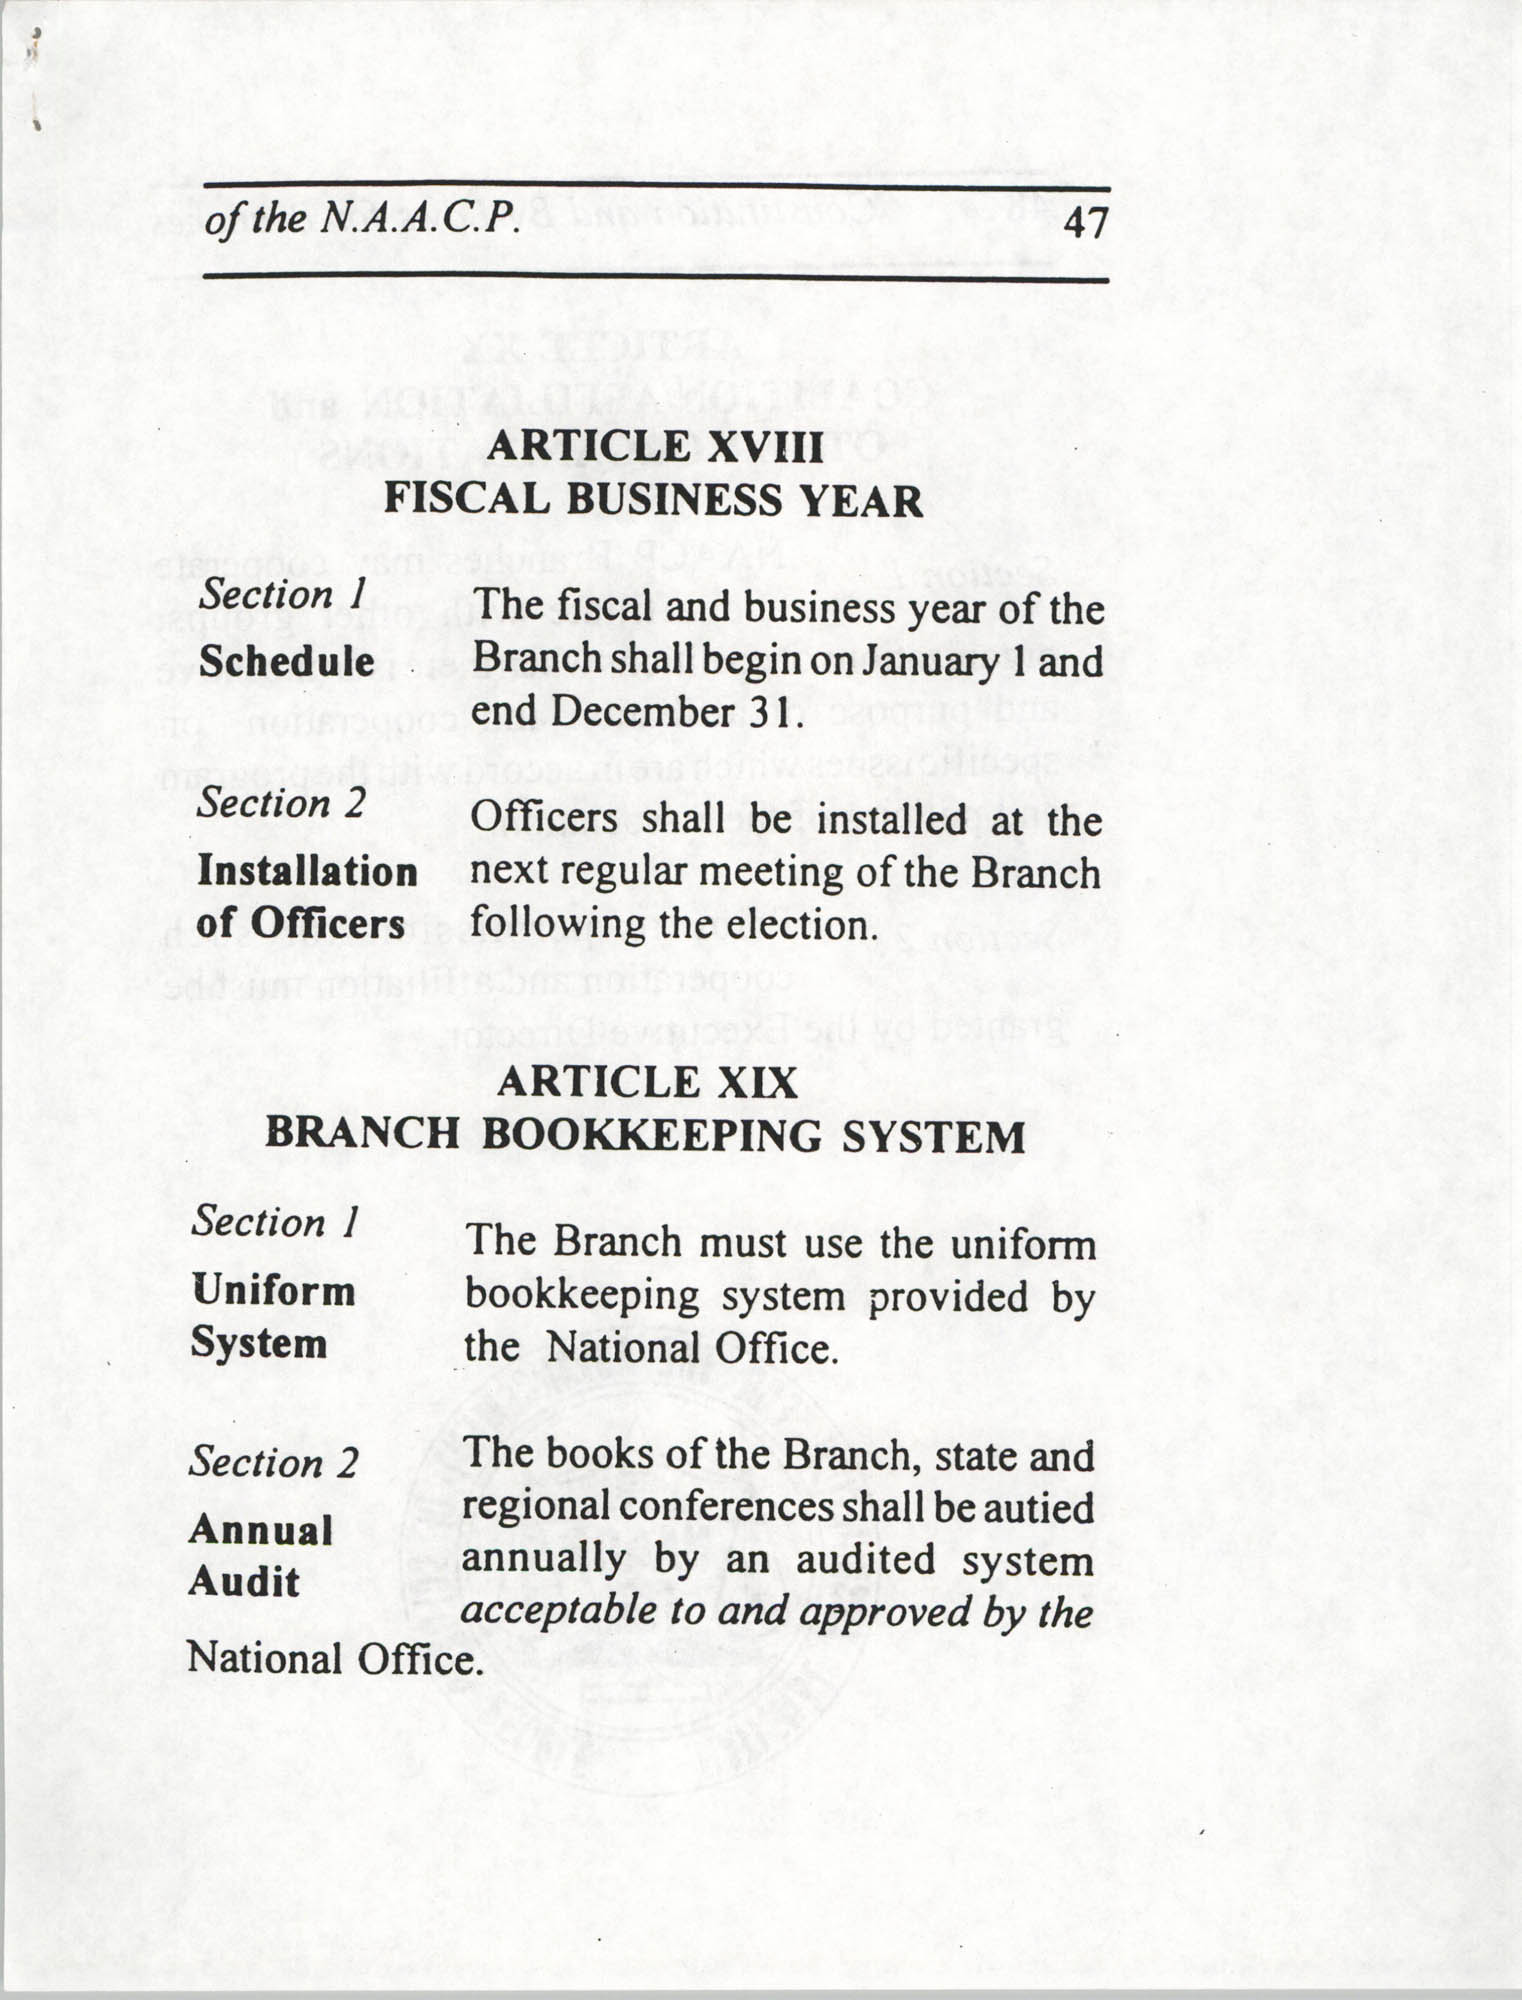 Constitution and By-Laws for Branches of the NAACP, July 1994, Page 47